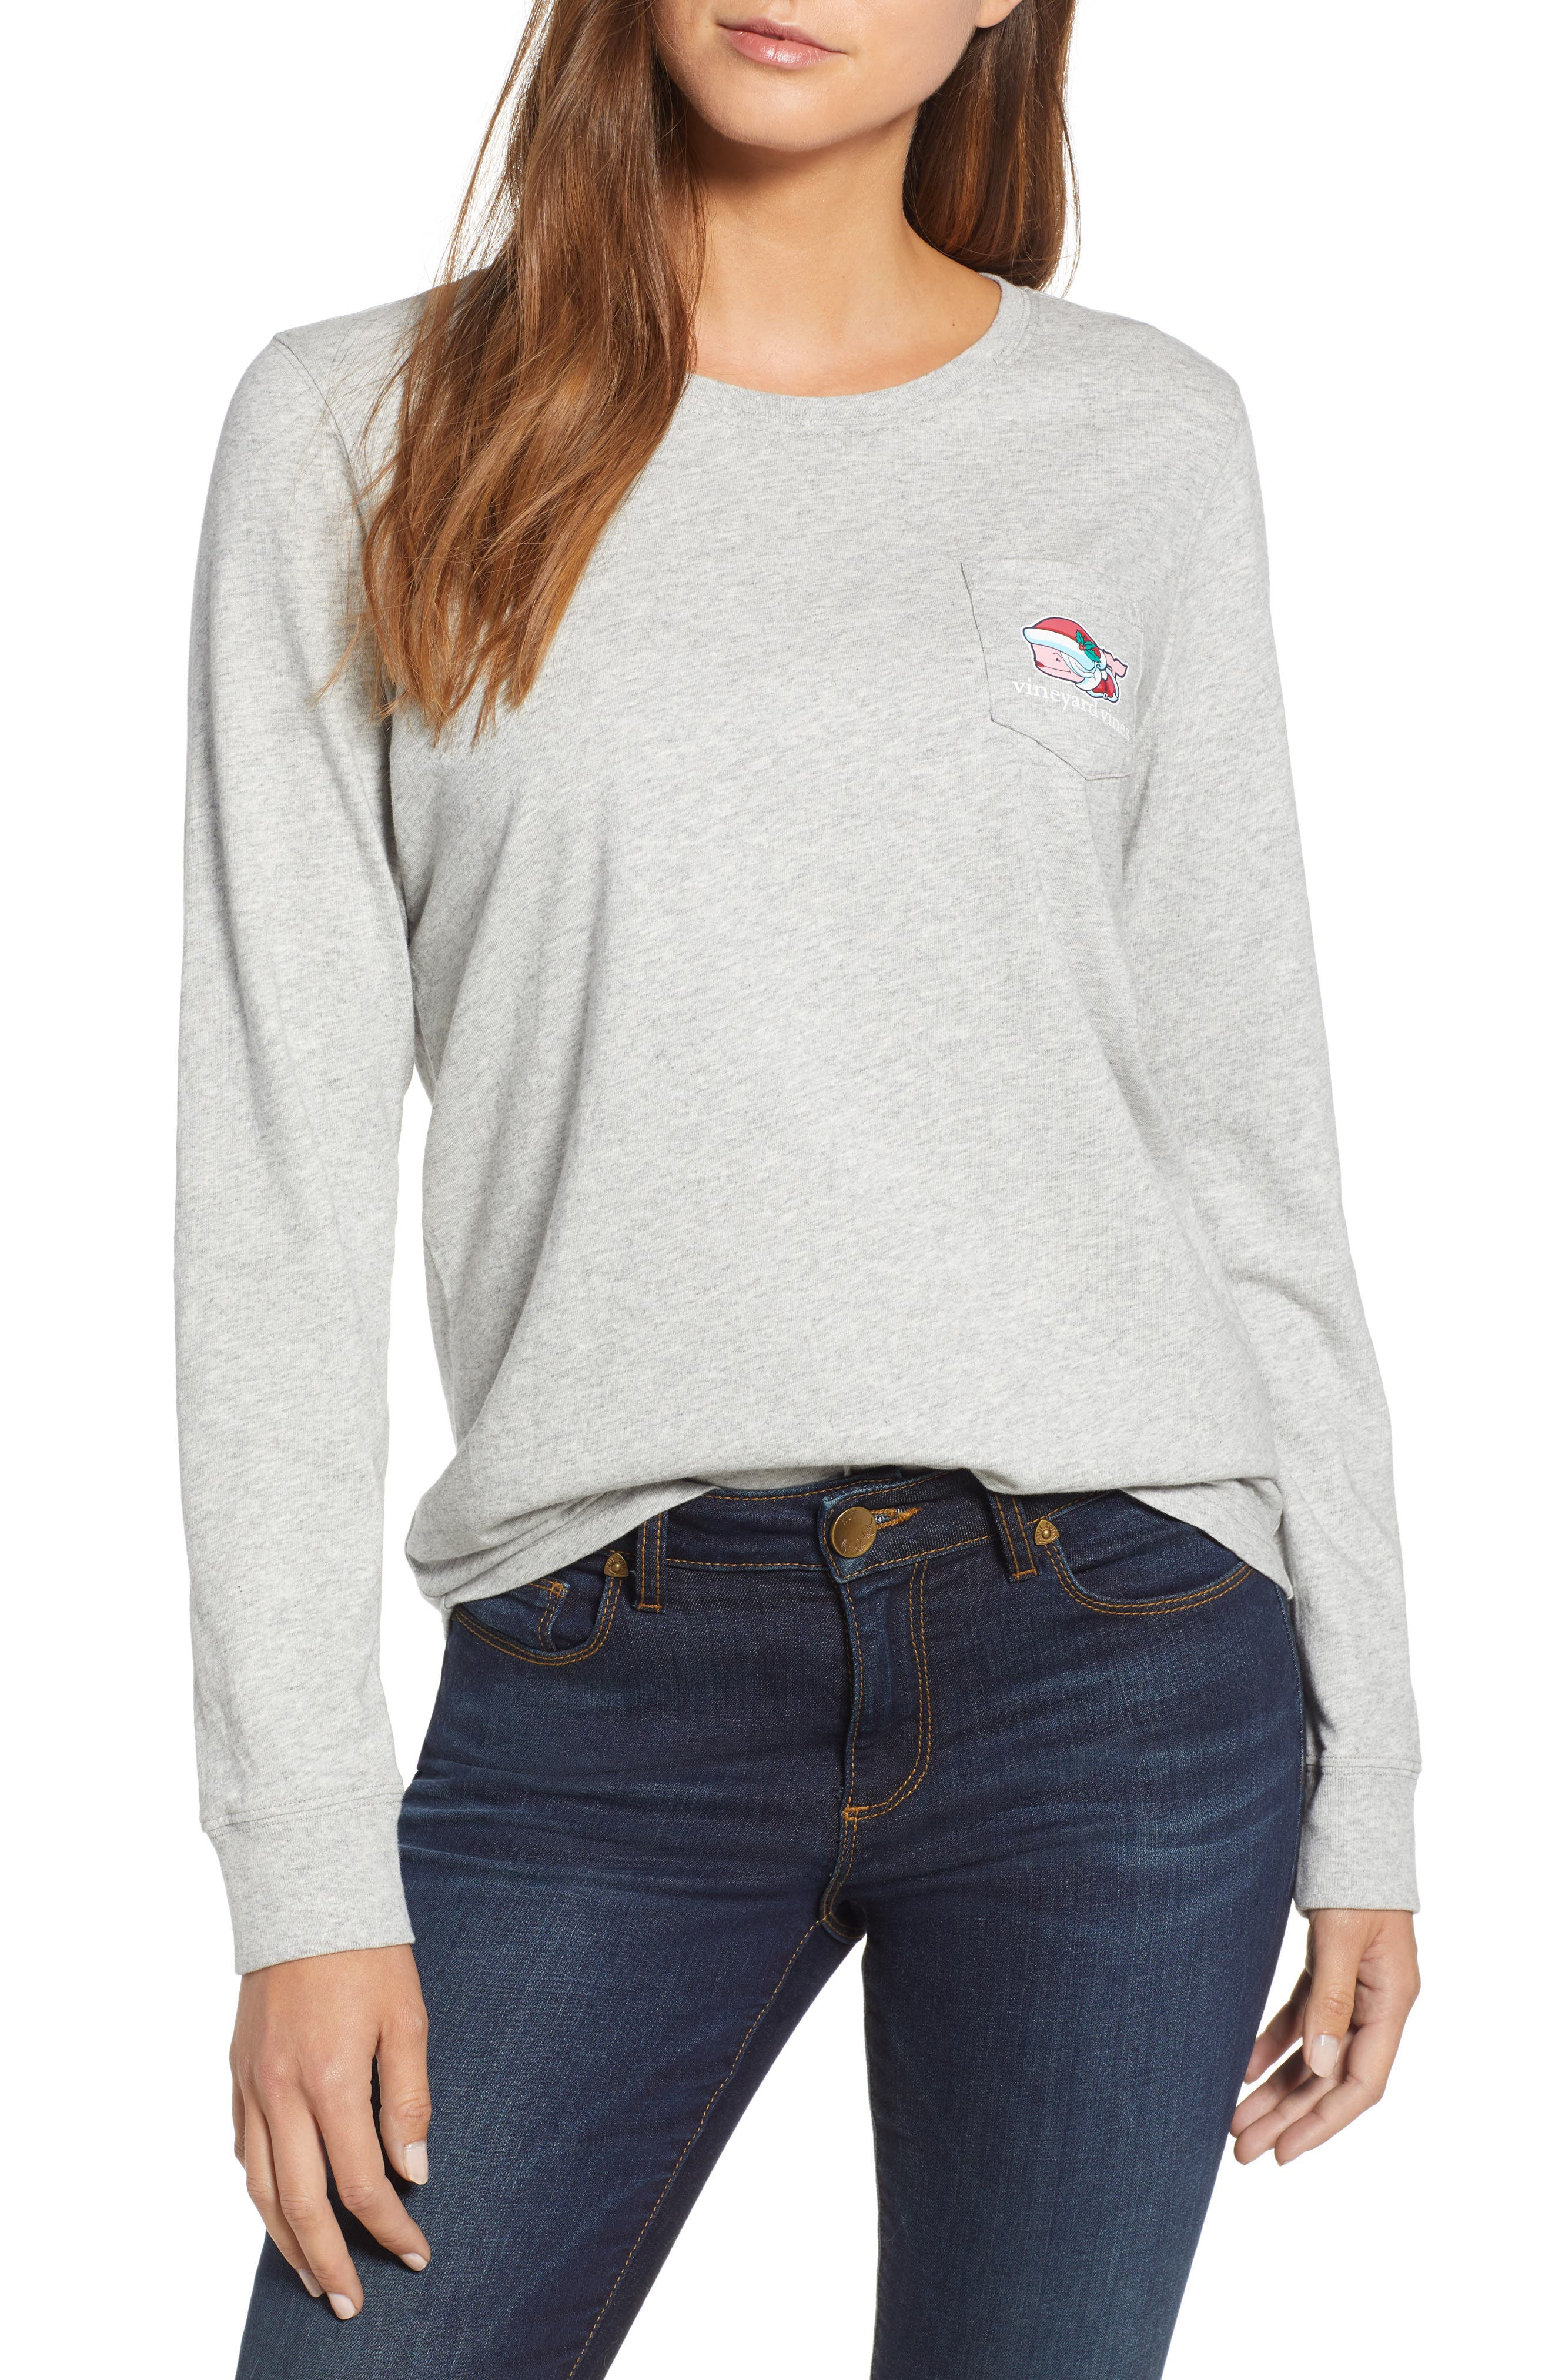 Mrs. Claus Pocket Tee,                         Main,                         color, GRAY HEATHER